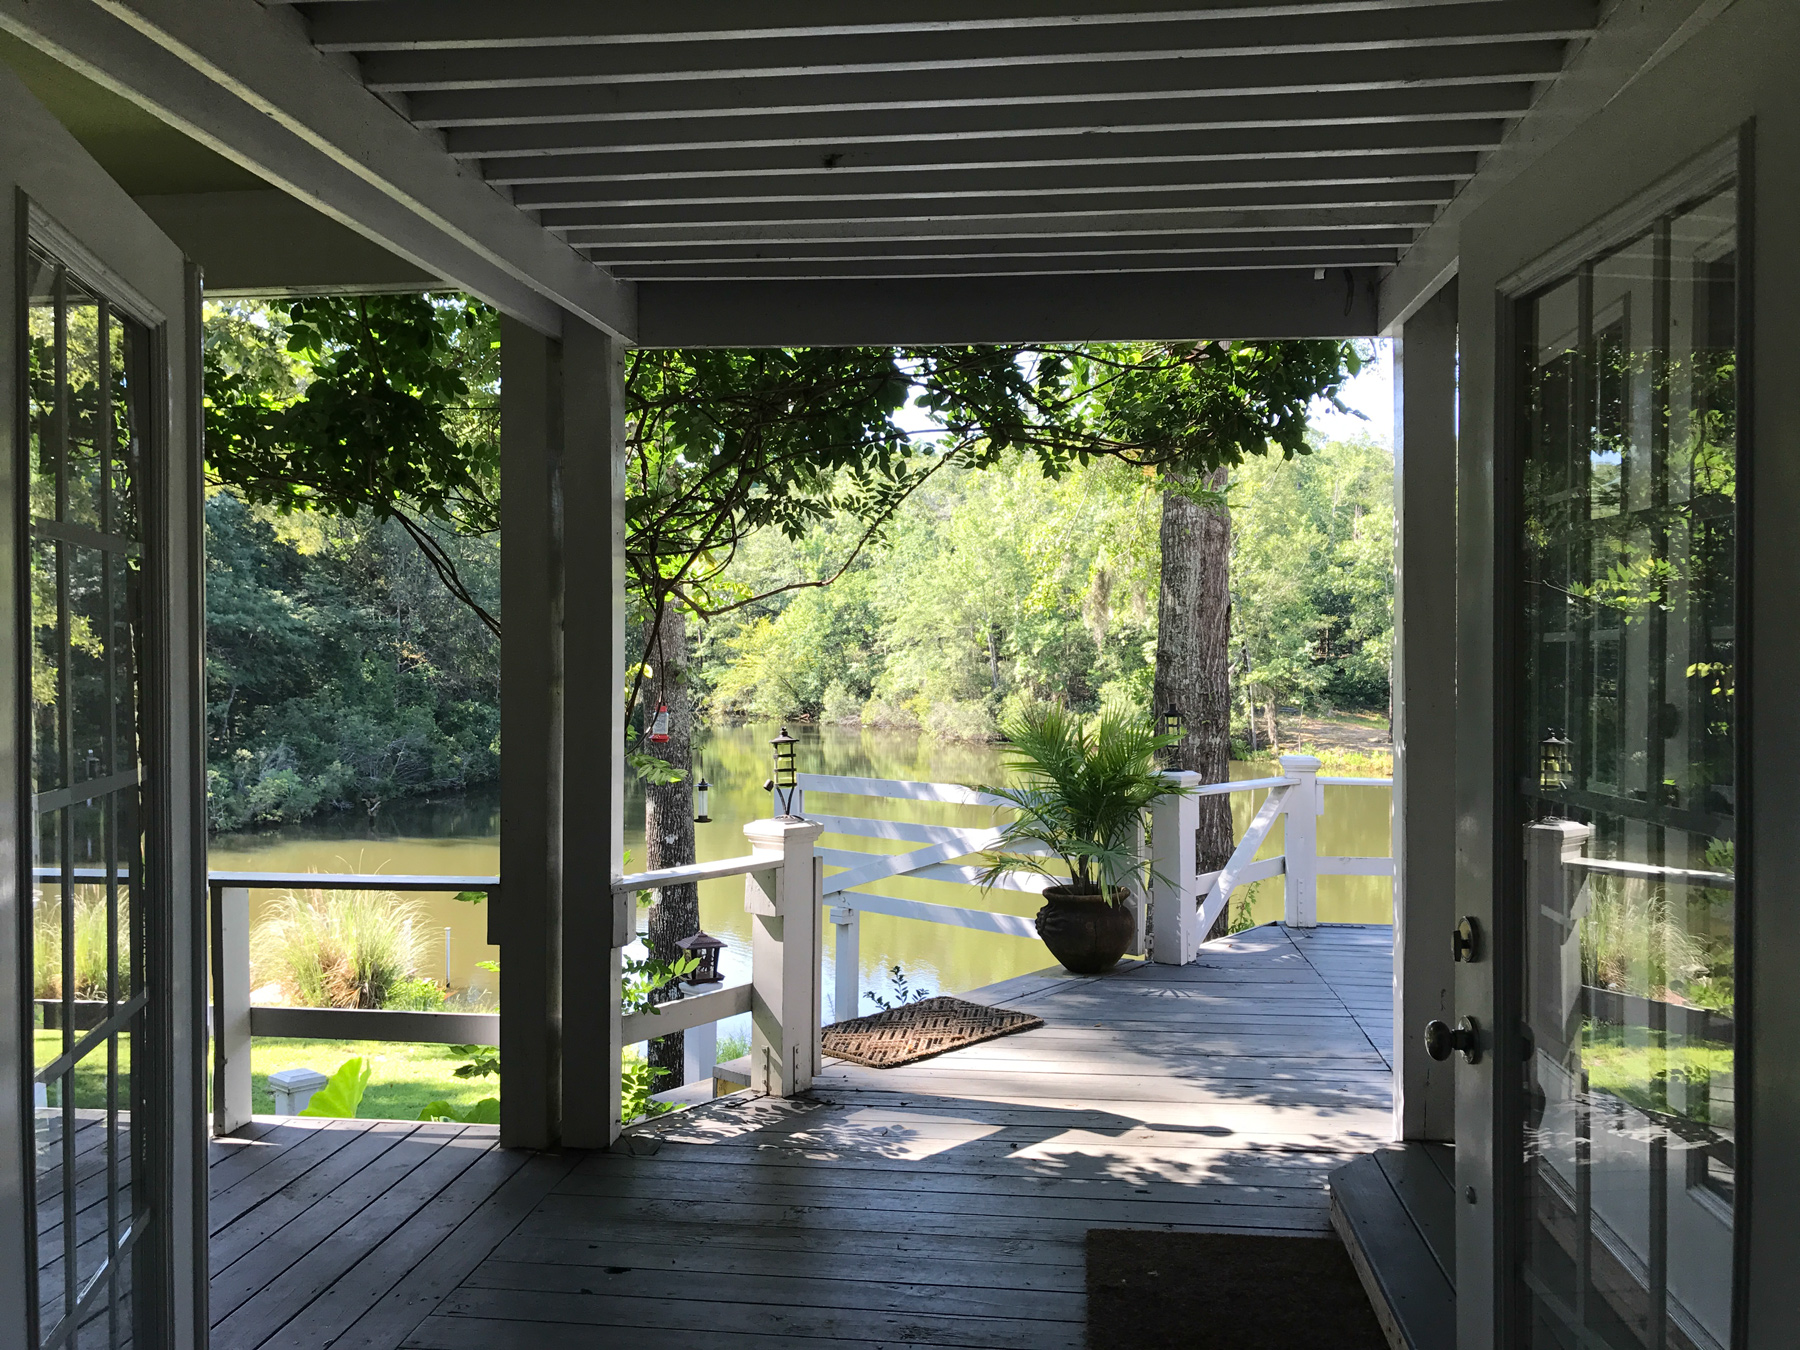 3riversrealty,plantation,middle-georgia-farm,secluded-living,private-get-away,mills-brock,georgia-land-for-sale,porch-pond-view.jpg